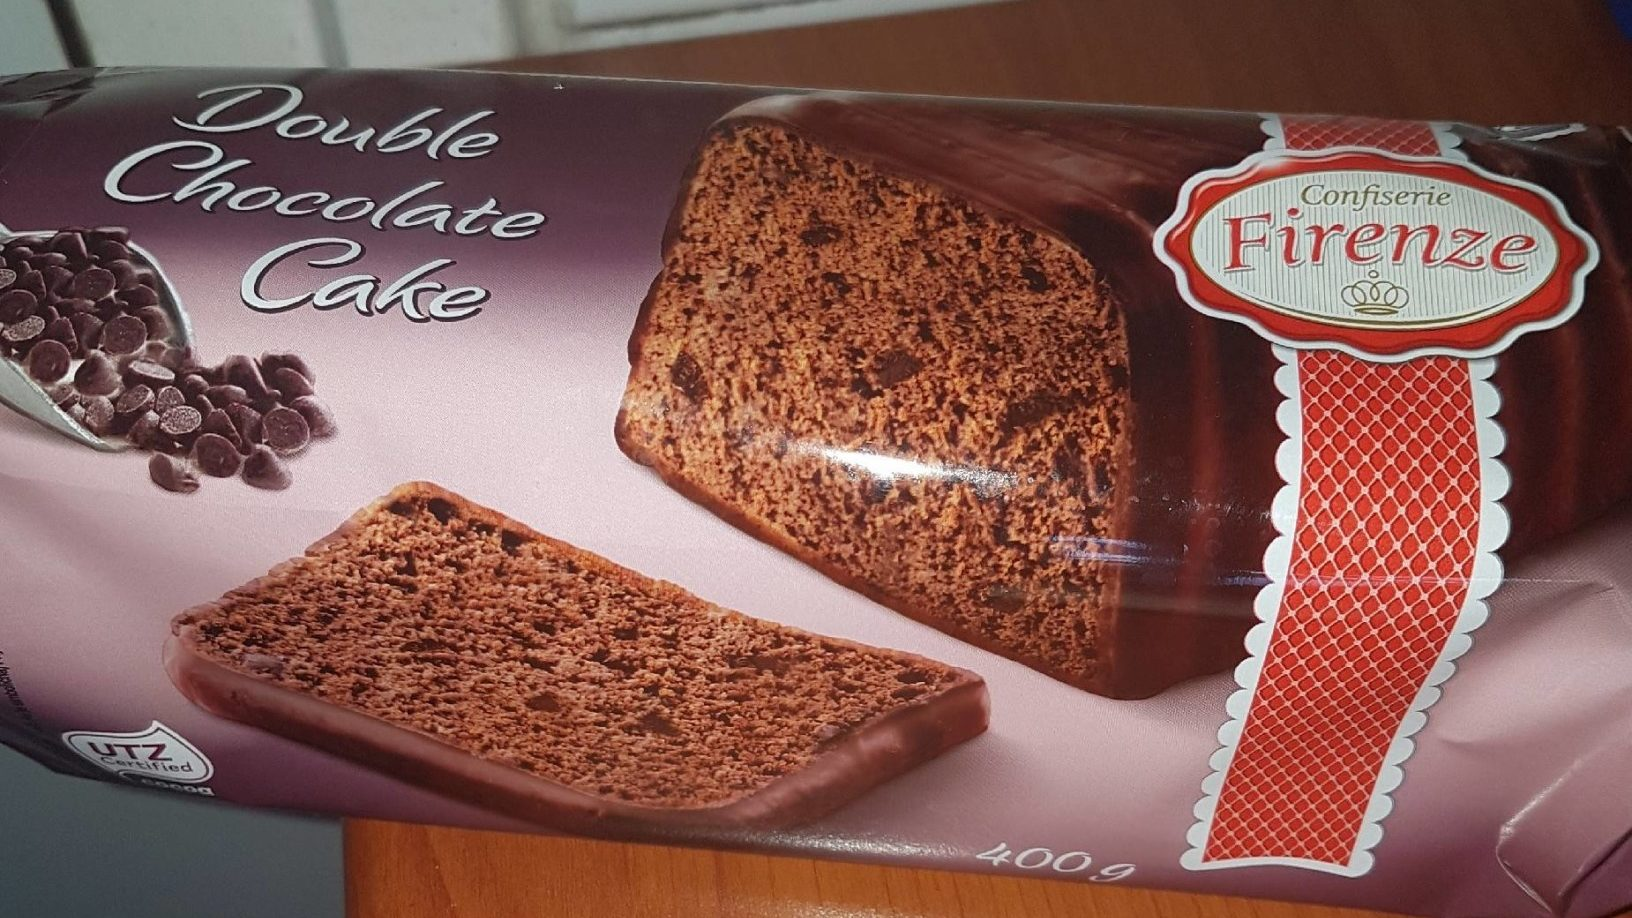 Double Chocolate Cake - Product